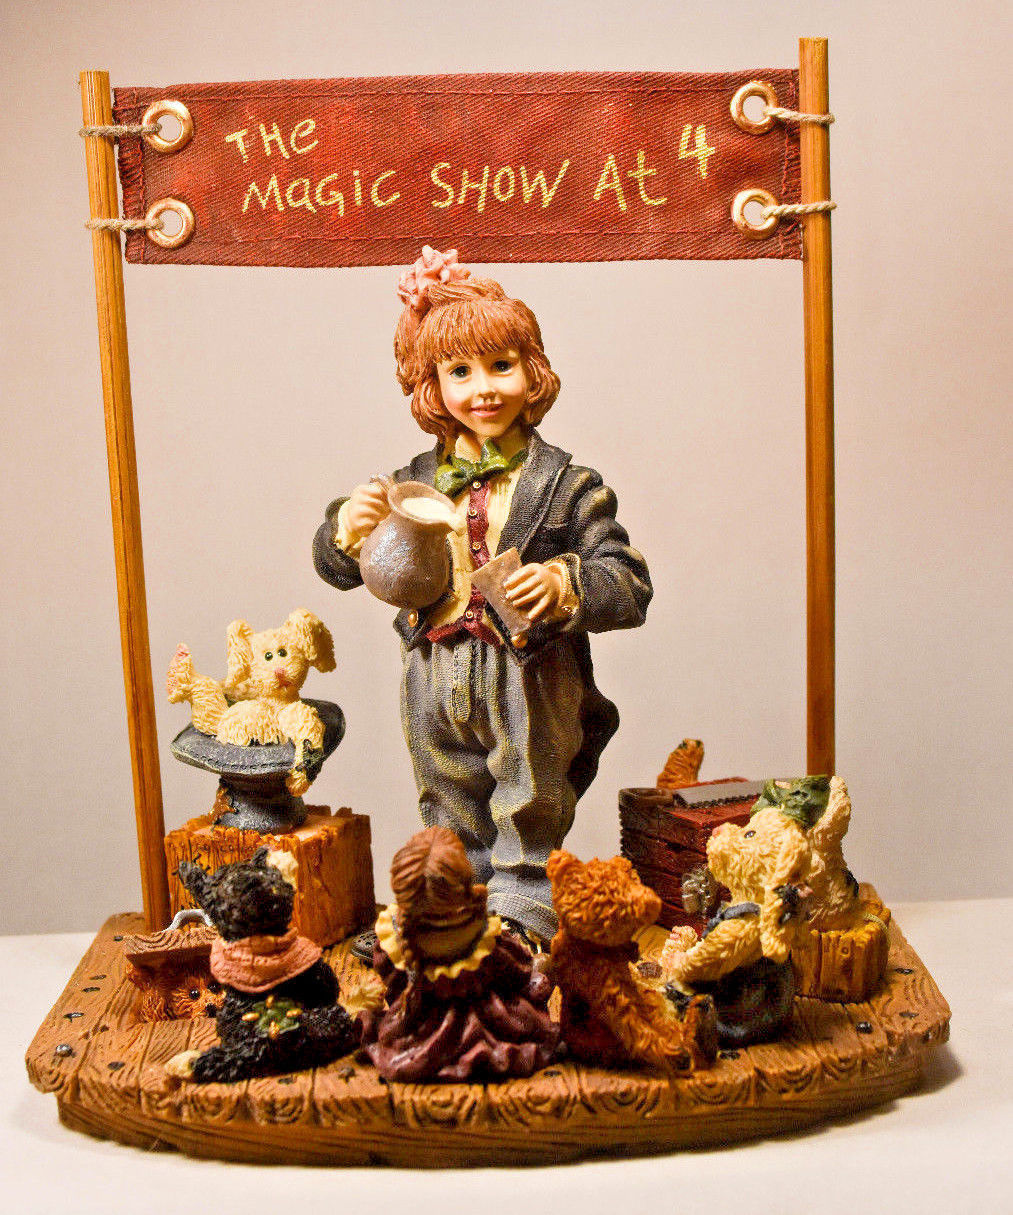 Boyds Bears: The Amazing Bailey... Magic Show at 4 - First Edition/3180 - #3518 image 3